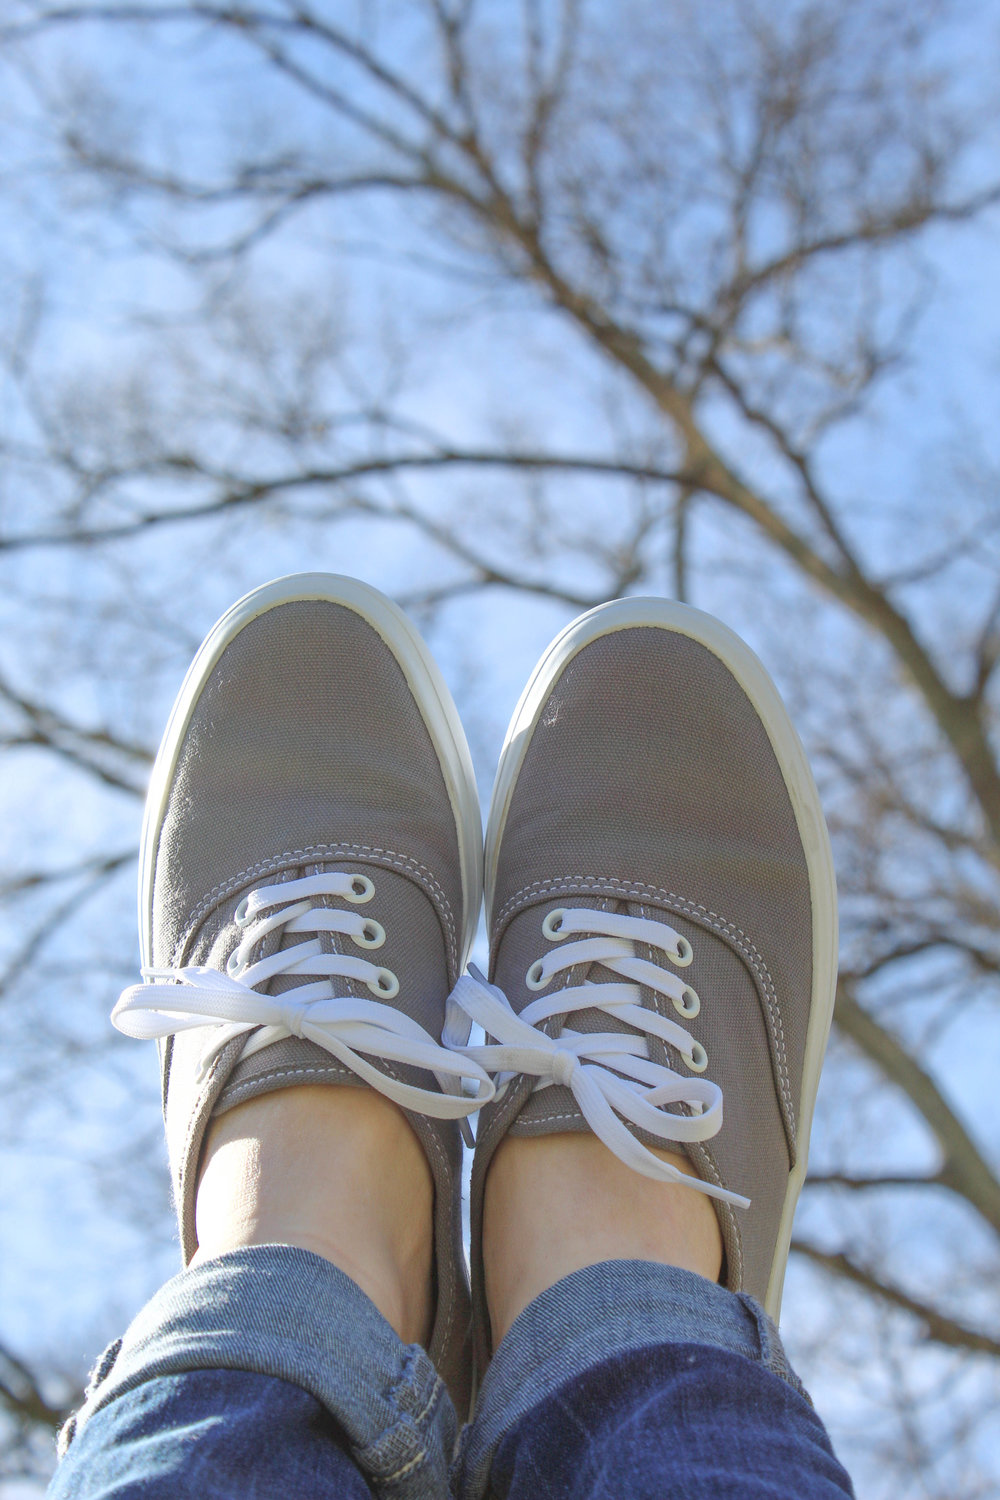 Ethical, Organic Shoes